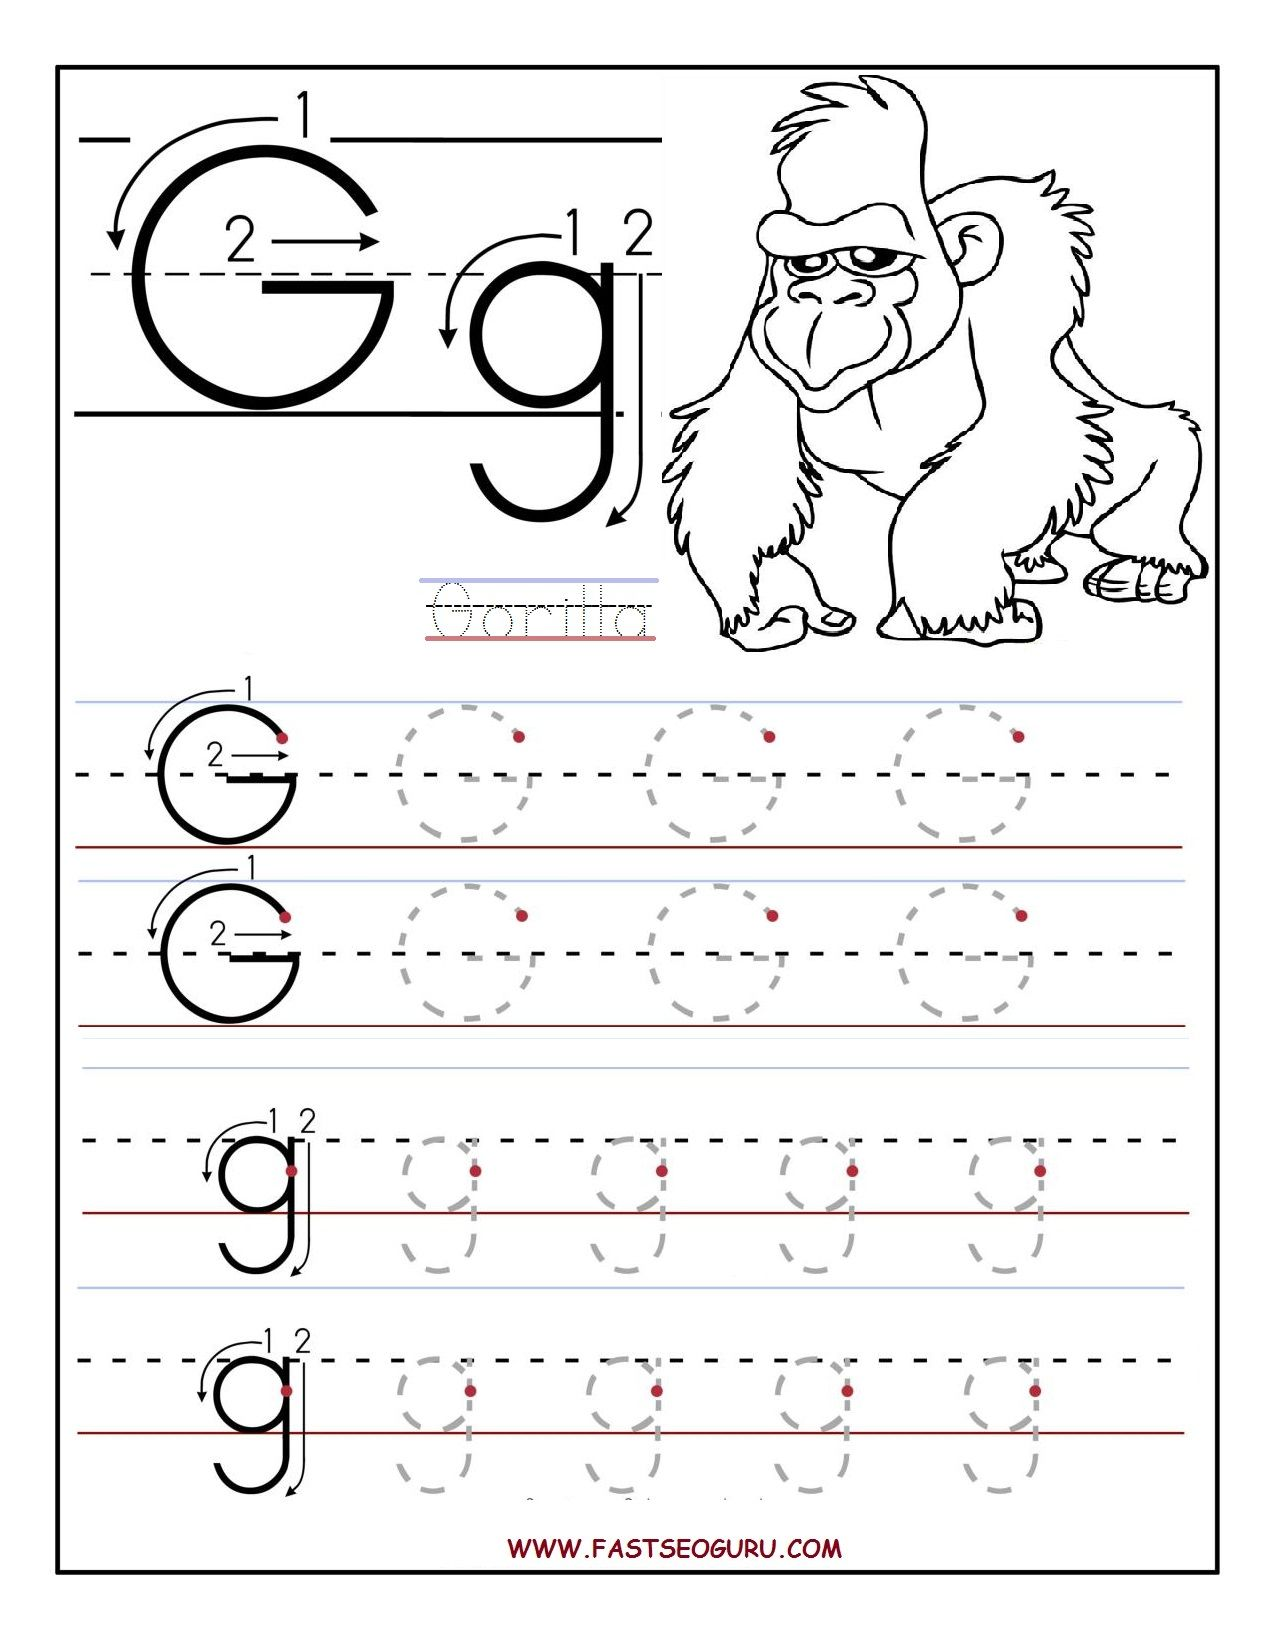 Worksheets Letter G Worksheets worksheets for preschoolers printable letter g tracing preschool